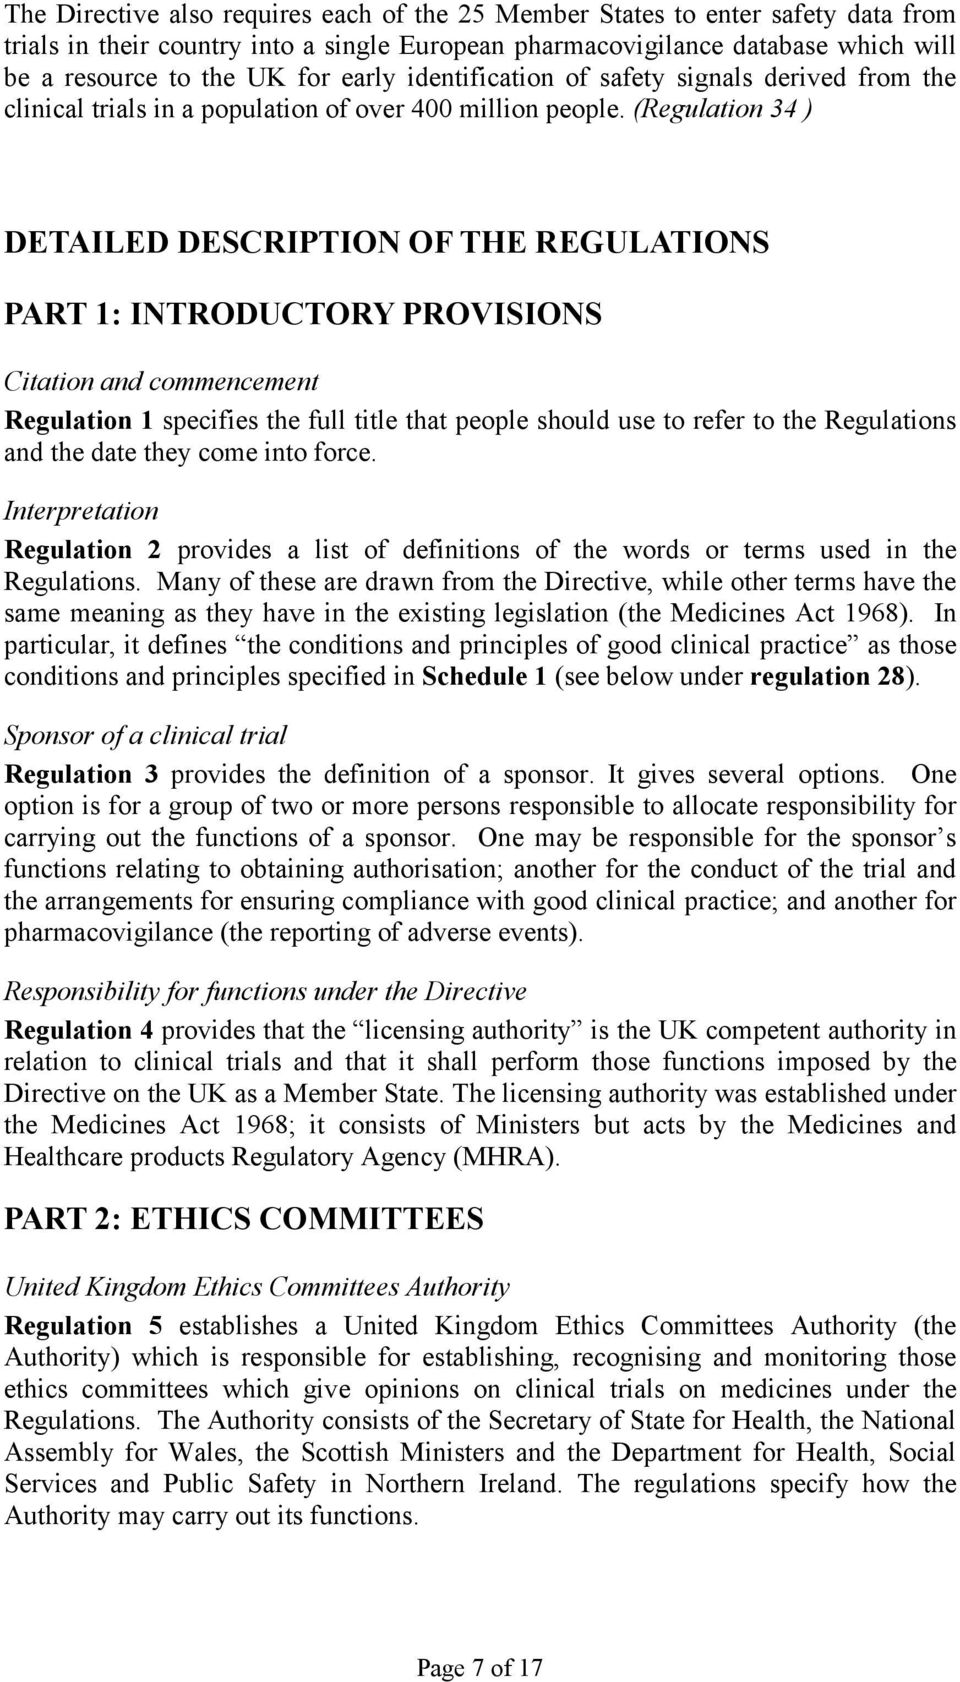 (Regulation 34 ) DETAILED DESCRIPTION OF THE REGULATIONS PART 1: INTRODUCTORY PROVISIONS Citation and commencement Regulation 1 specifies the full title that people should use to refer to the